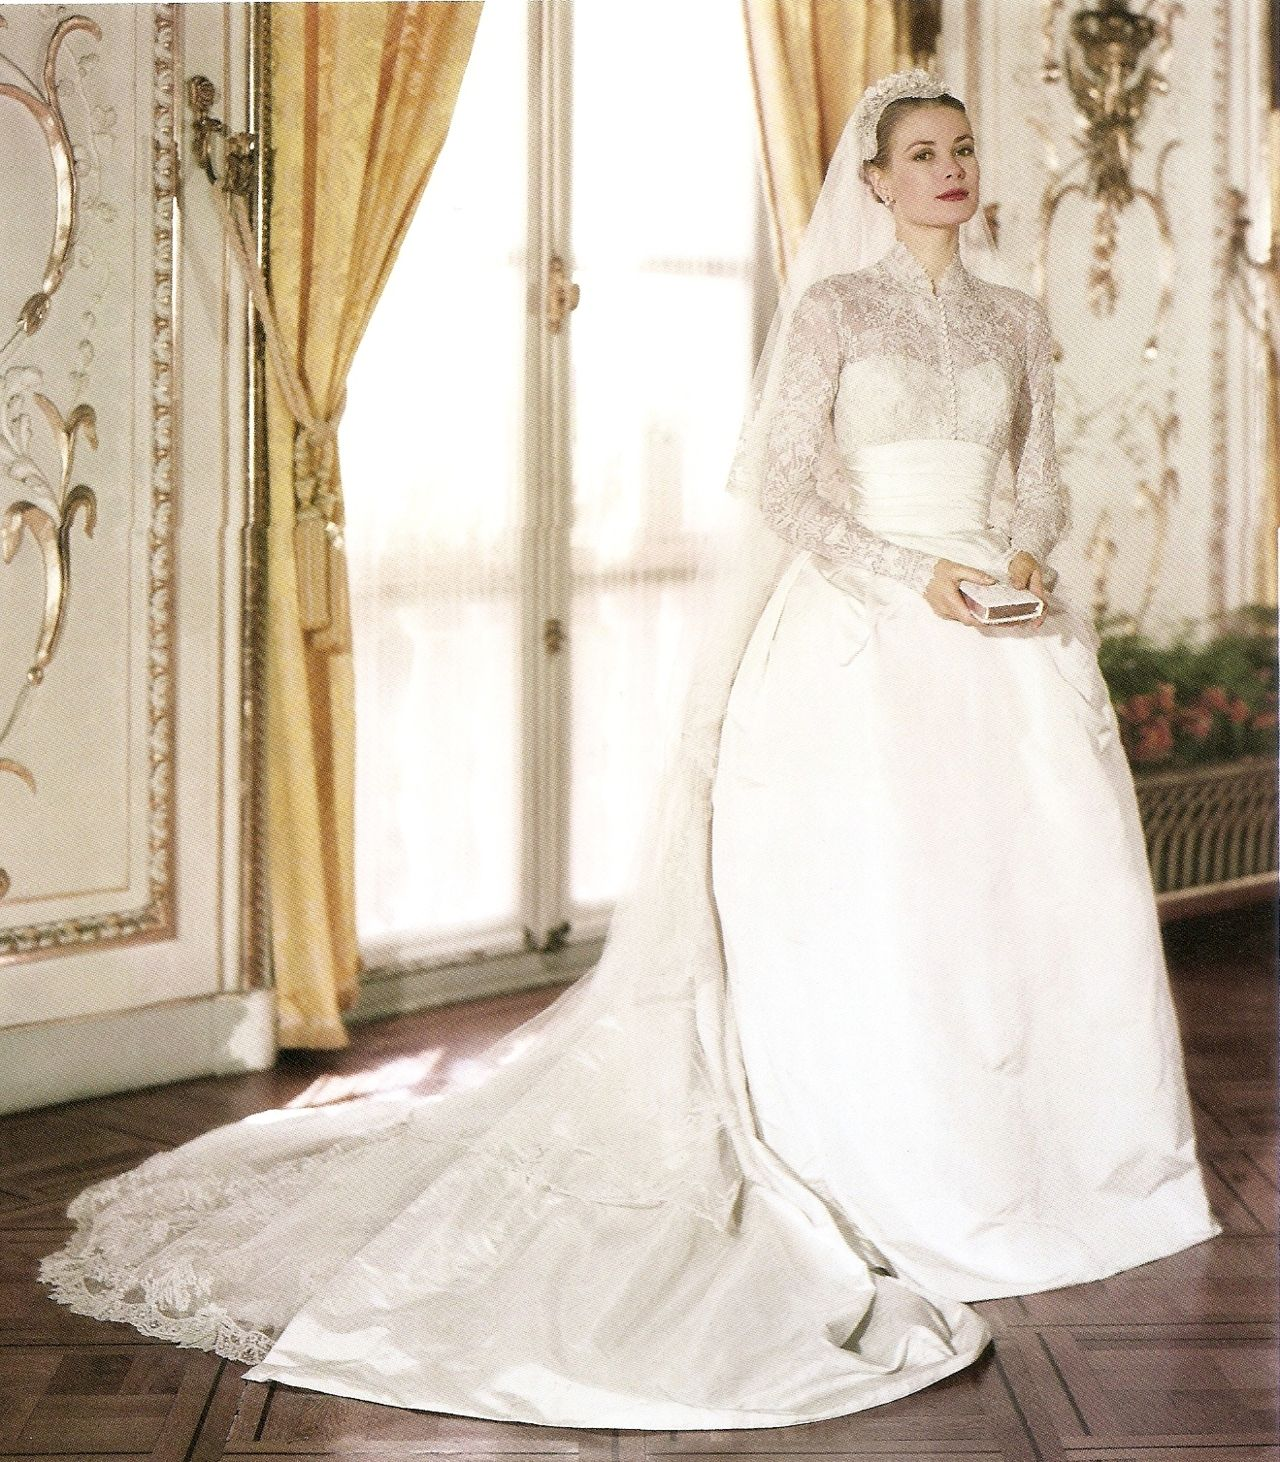 Wedding Wedding Dress Of Grace Kelly princess grace kelly a vision once upon time pinterest vision